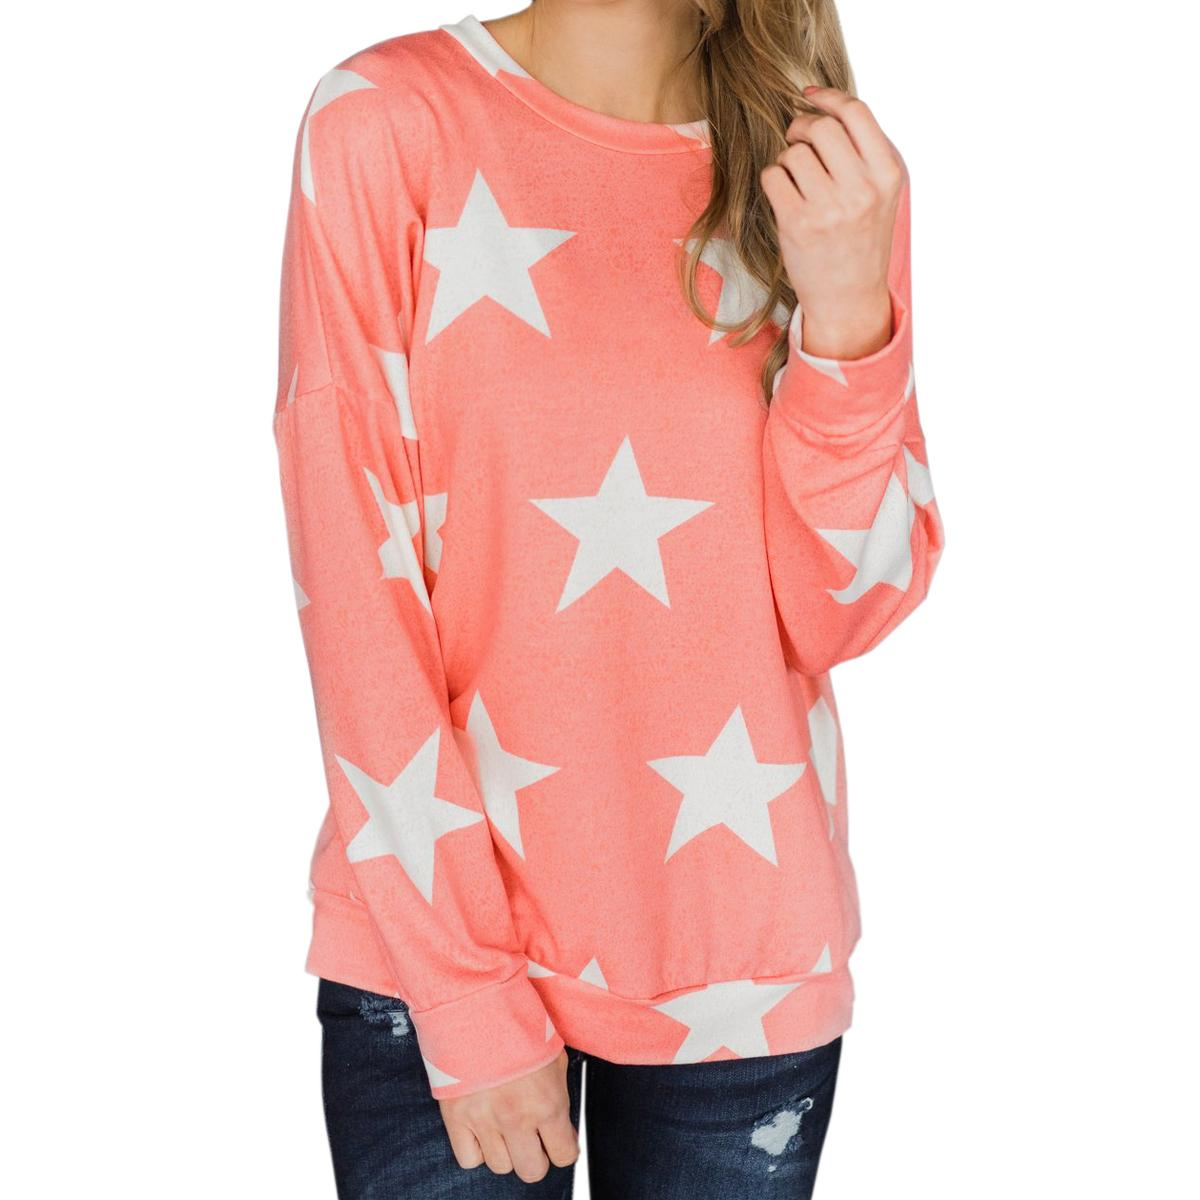 Pullover Women Pink Autumn T Shirts Winter Plus Size Female T Shirt Stars  Printed Tees Casual Long Sleeve Sexy Tshirt Tops GV573 Clothes T Shirt  Crazy T ... b86eb3b4cab3